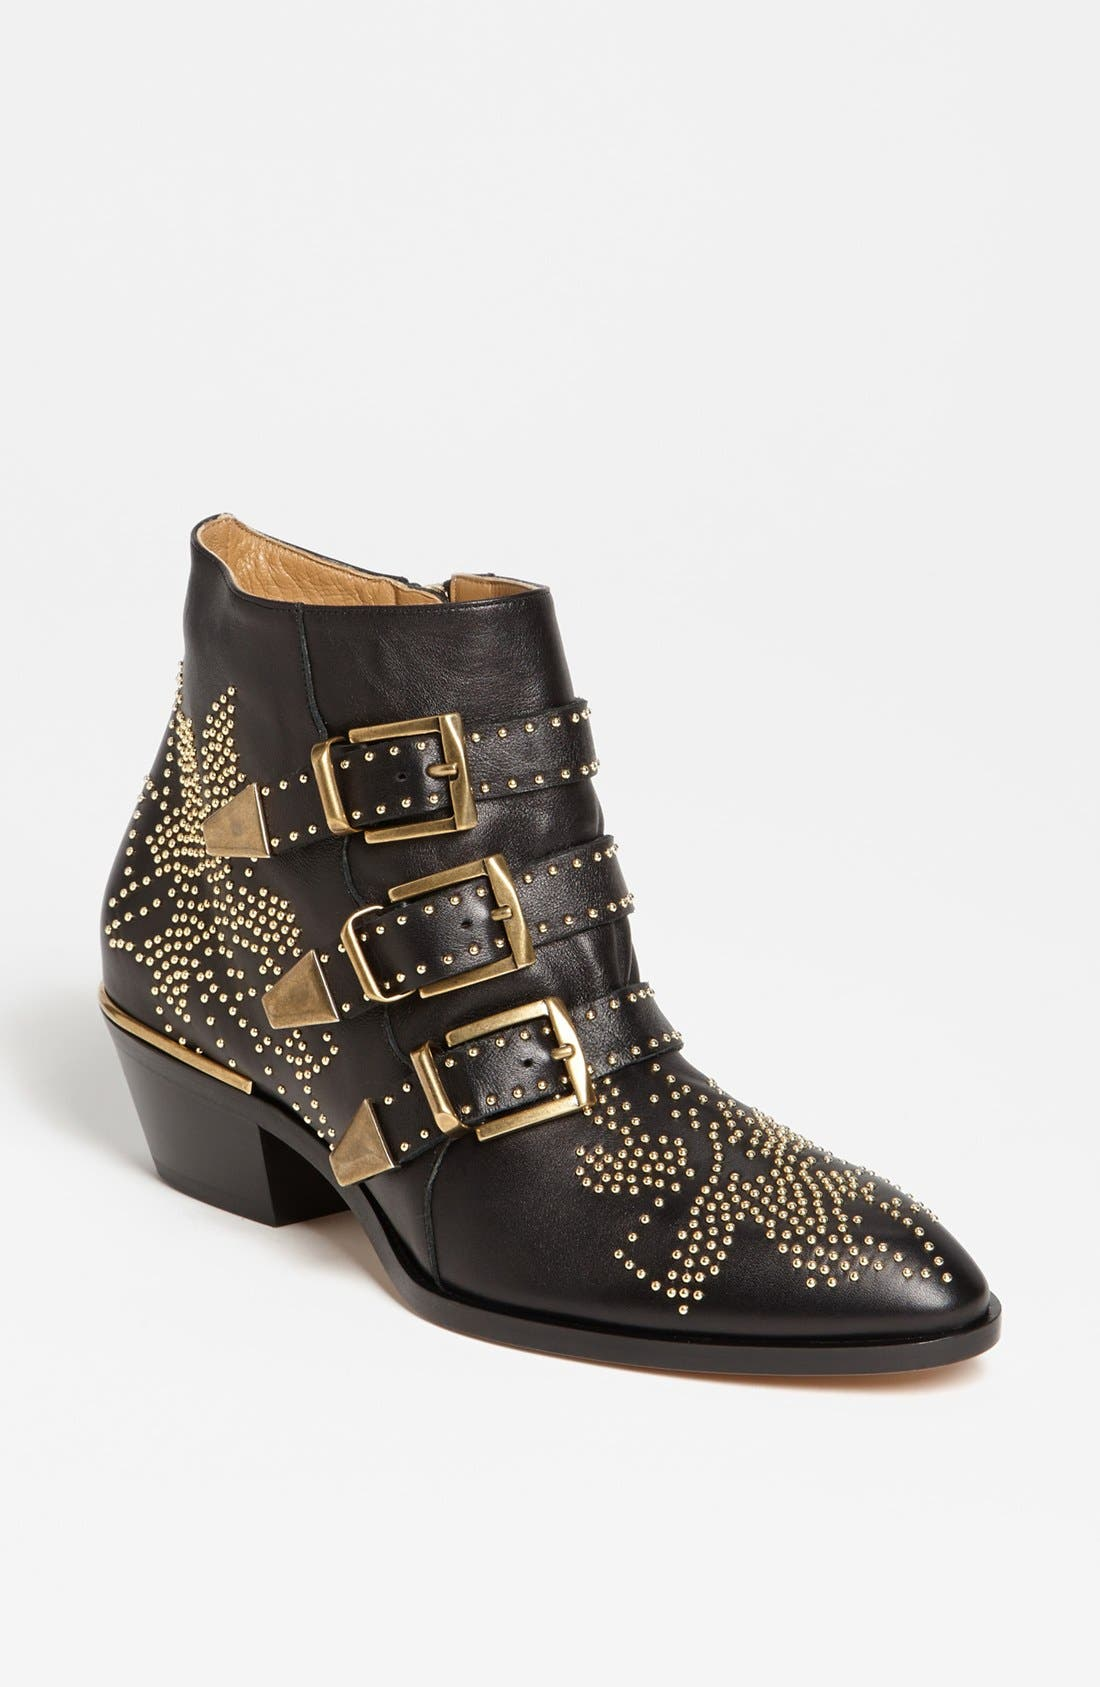 Alternate Image 1 Selected - Chloé 'Susanna' Stud Buckle Bootie